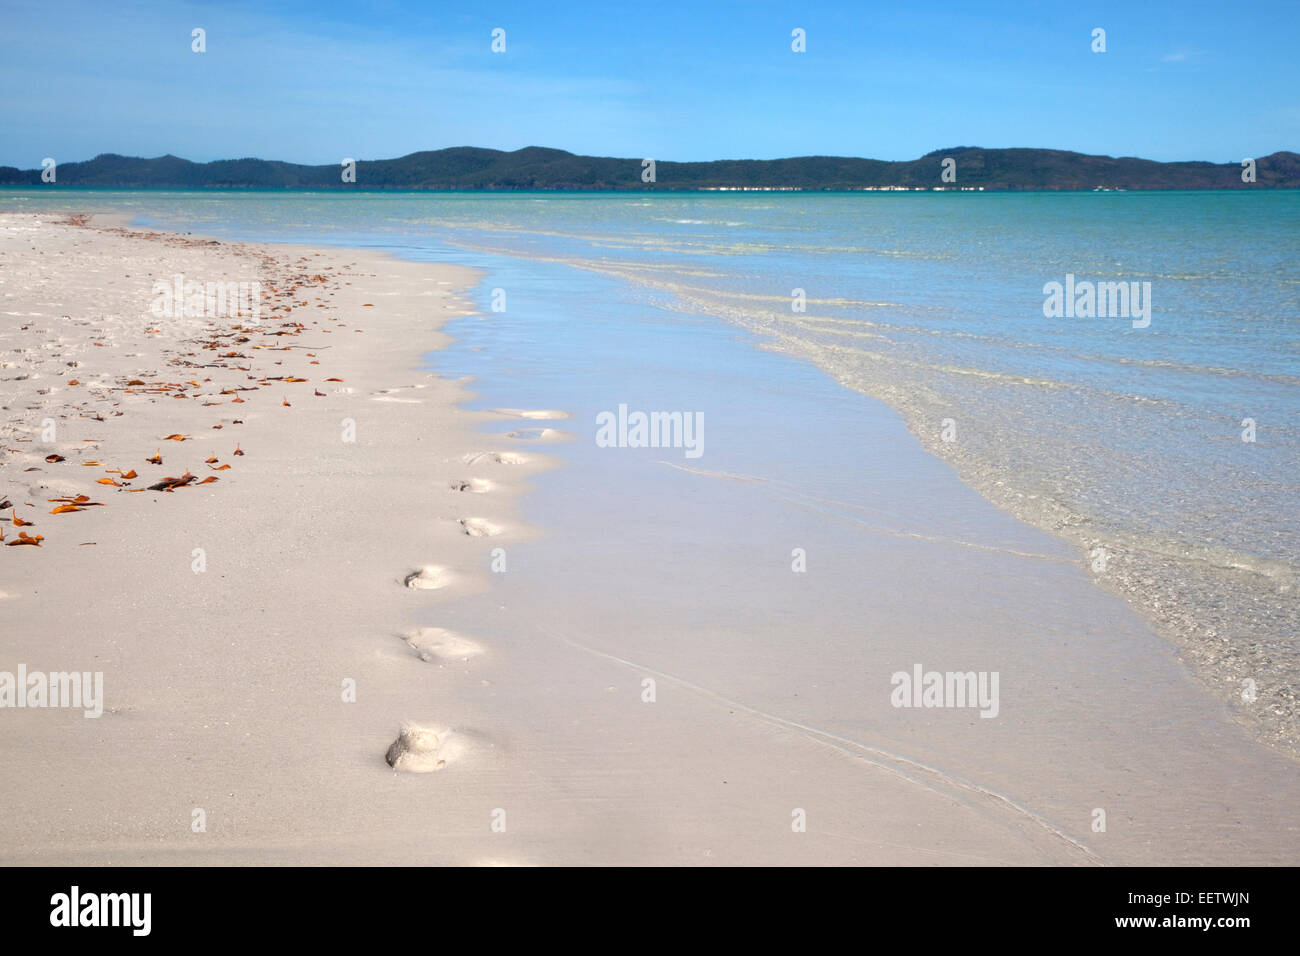 White sandy shoreline of Whitehaven Beach on Whitsunday Island in the Coral Sea, Queensland, Australia - Stock Image